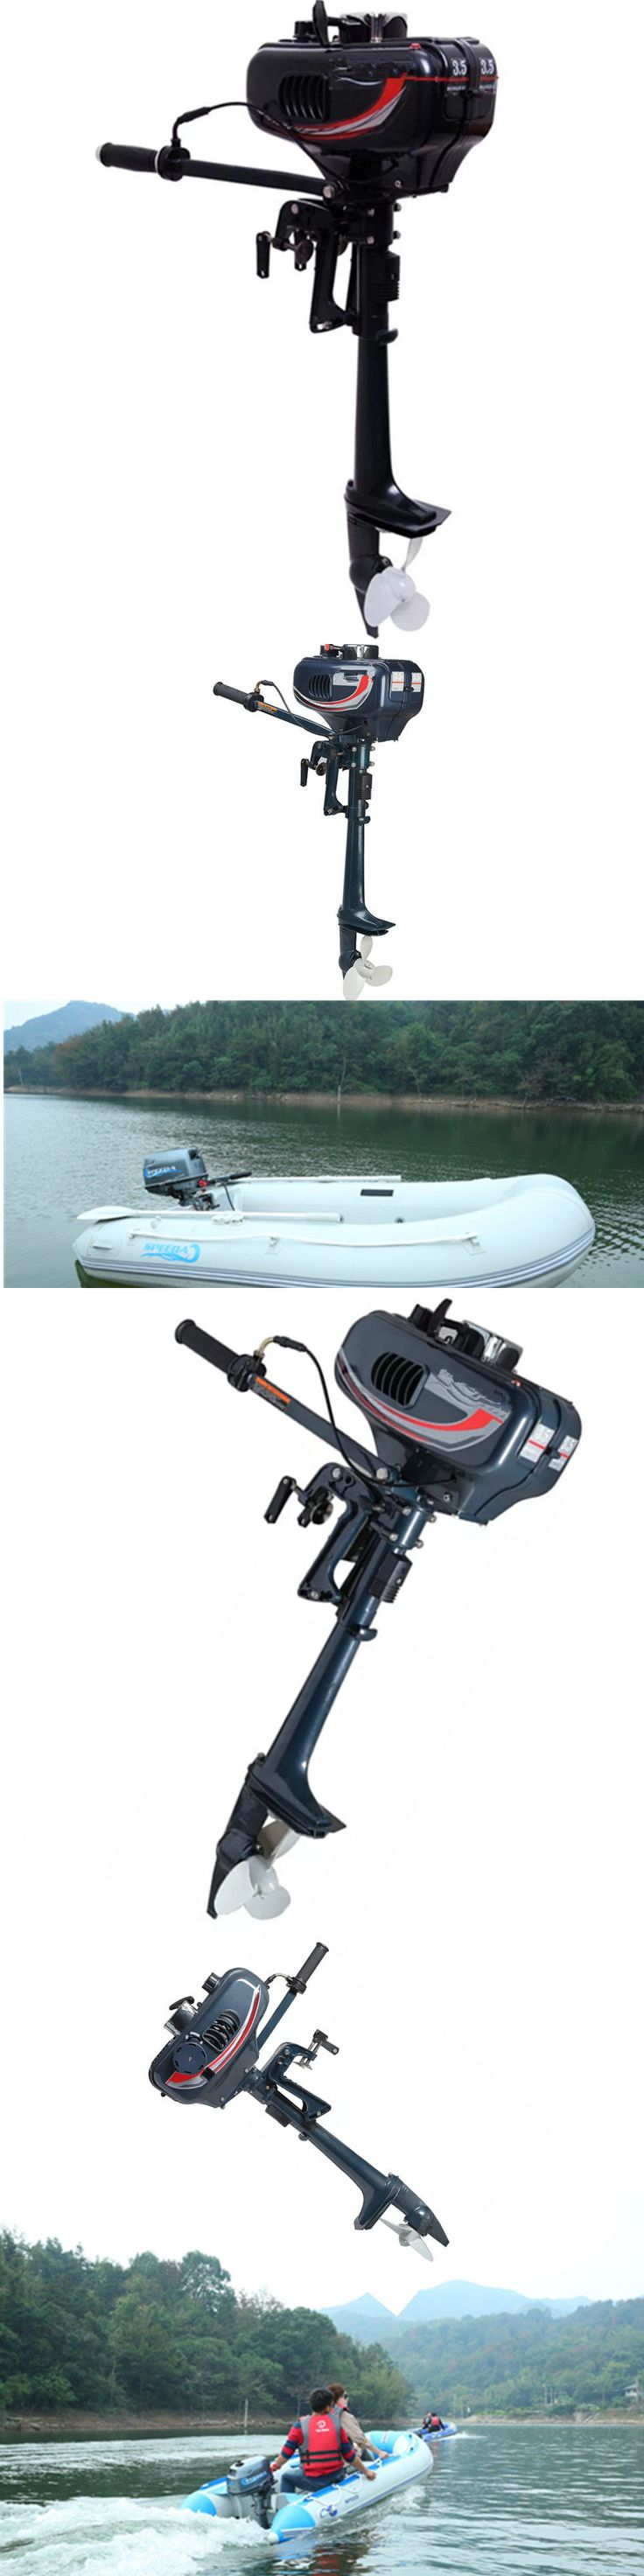 boat parts: New 2 Stroke 3.5Hp Heavy Duty Outboard Motor Boat Engine W/Water Cooling System -> BUY IT NOW ONLY: $999.0 on eBay!